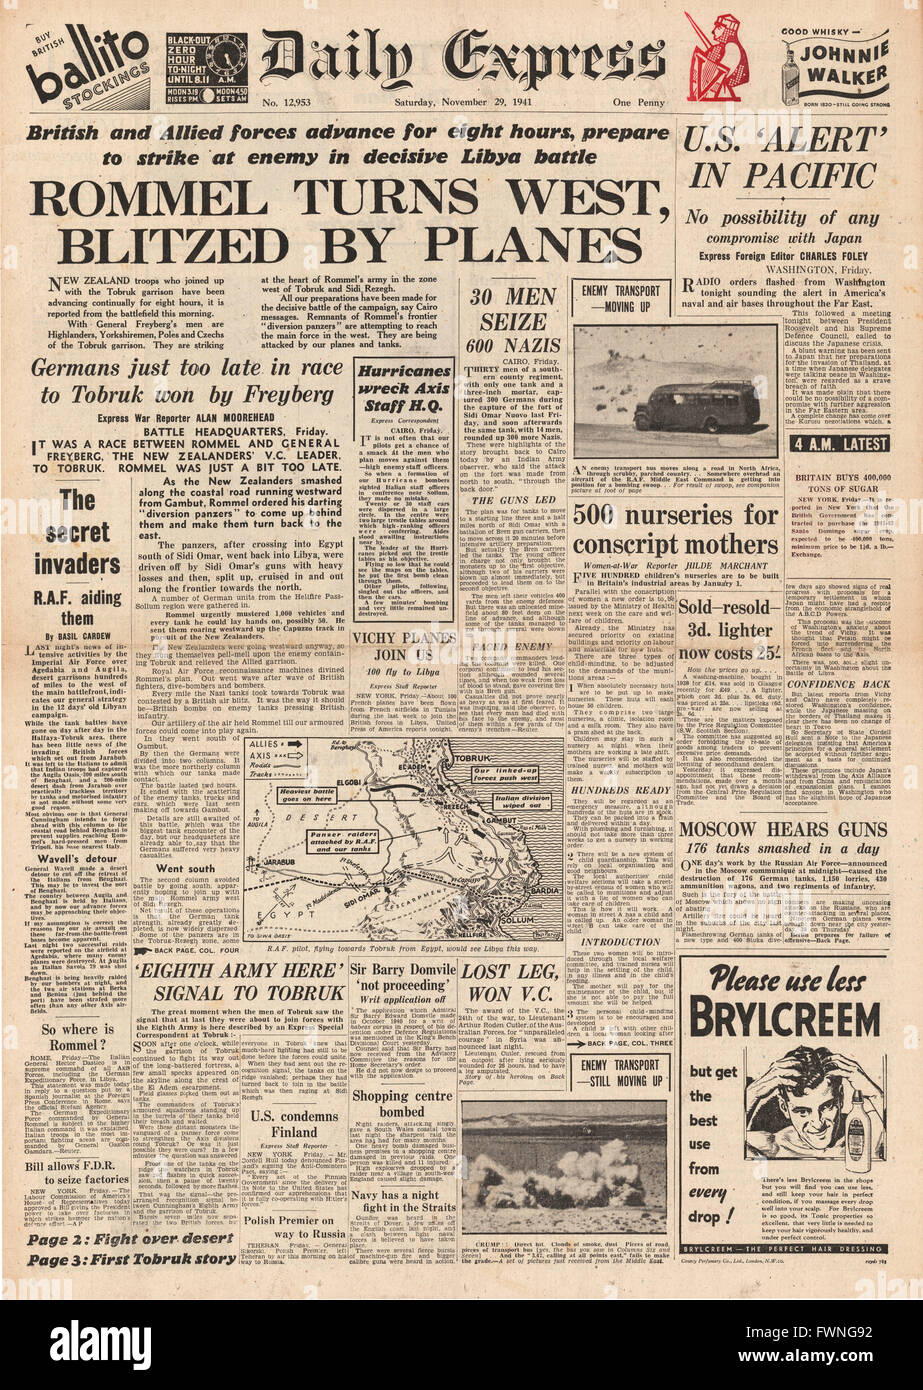 1941 front page Daily Express Battle for Libya and U.S. alert in Pacific - Stock Image